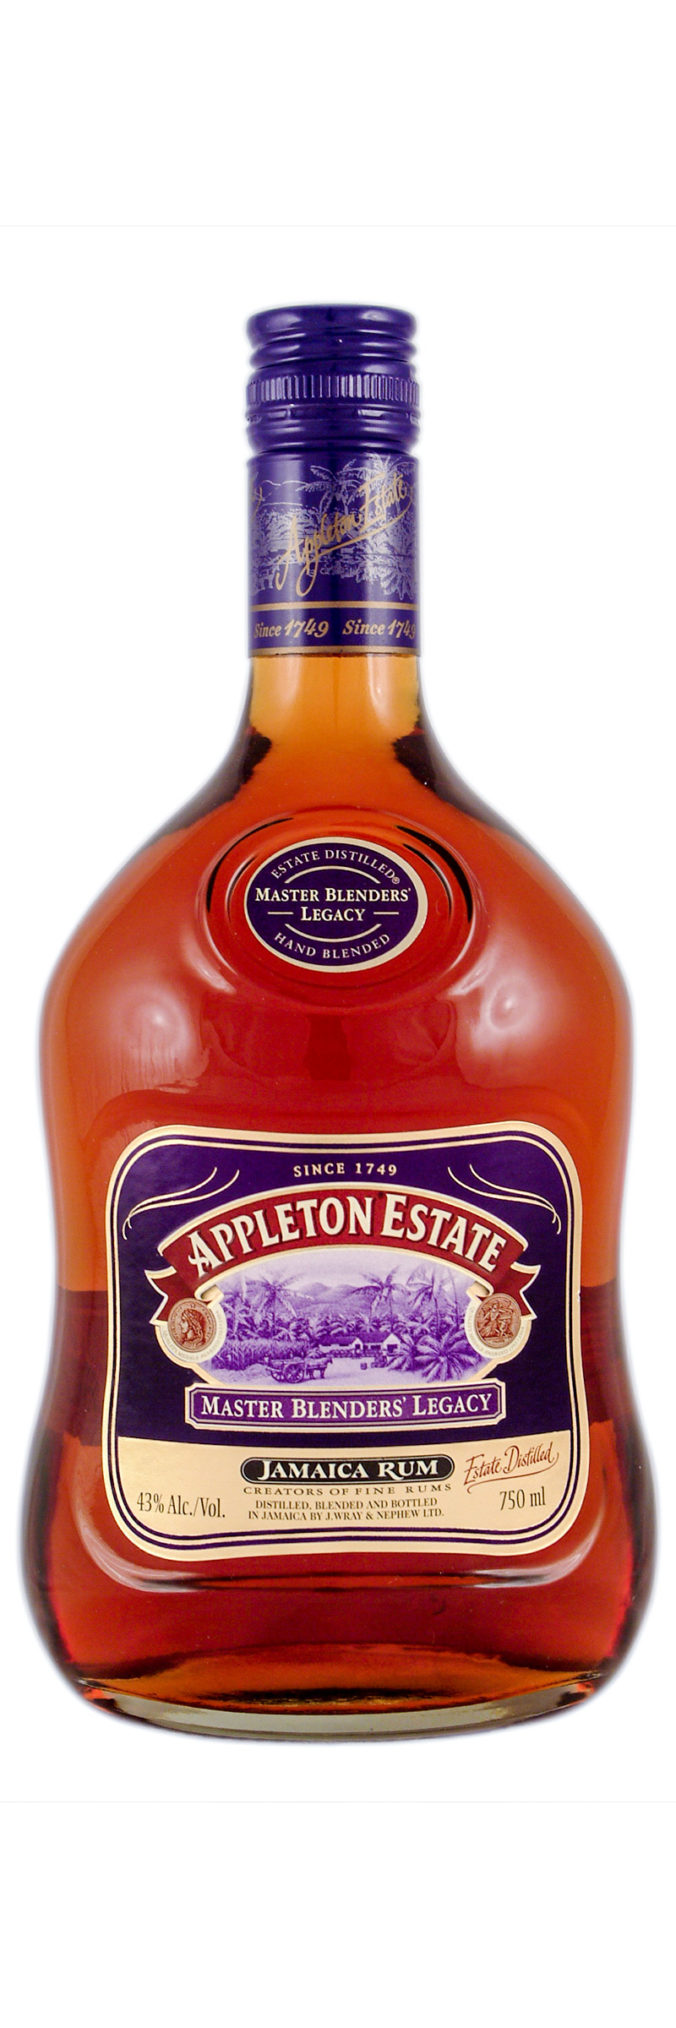 Appleton Estate Master Blenders' Legacy celebrates the masterful talents of three of their three greatest rum blenders: Owen Tullock, Joy Spence and David Morrison. Bottled at 43%.